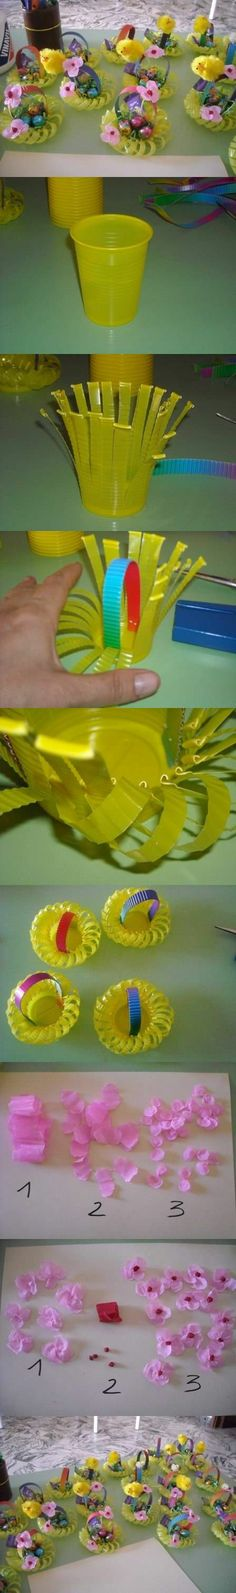 How to make Plastic Cup Flower Basket step by step DIY tutorial instructions / How To Instructions